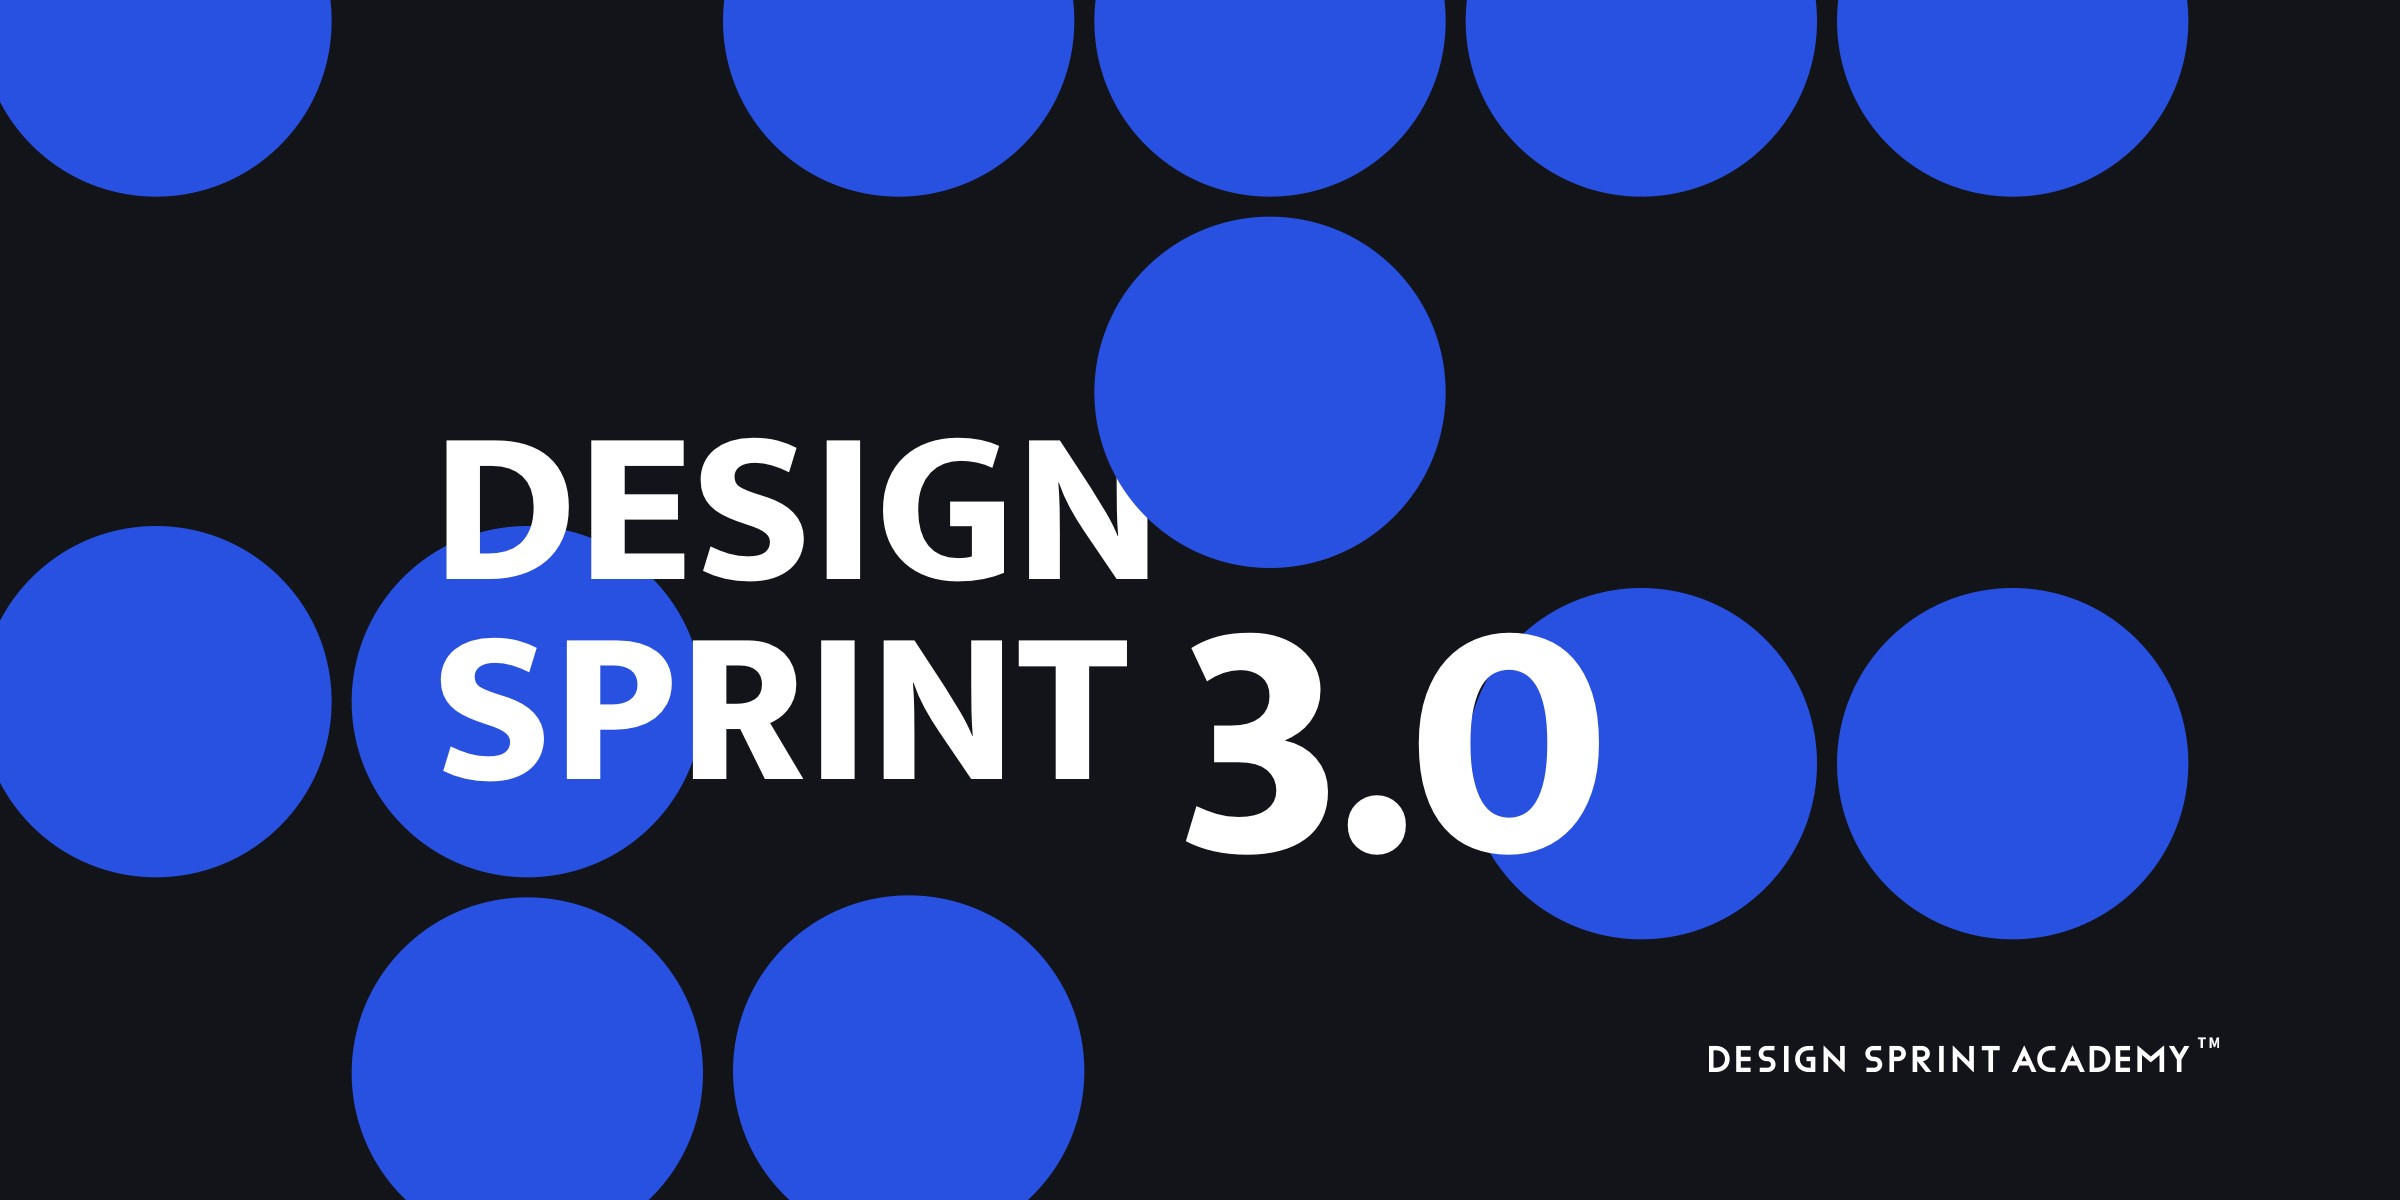 Design Sprint 3 0 - Design Sprint Academy - Medium